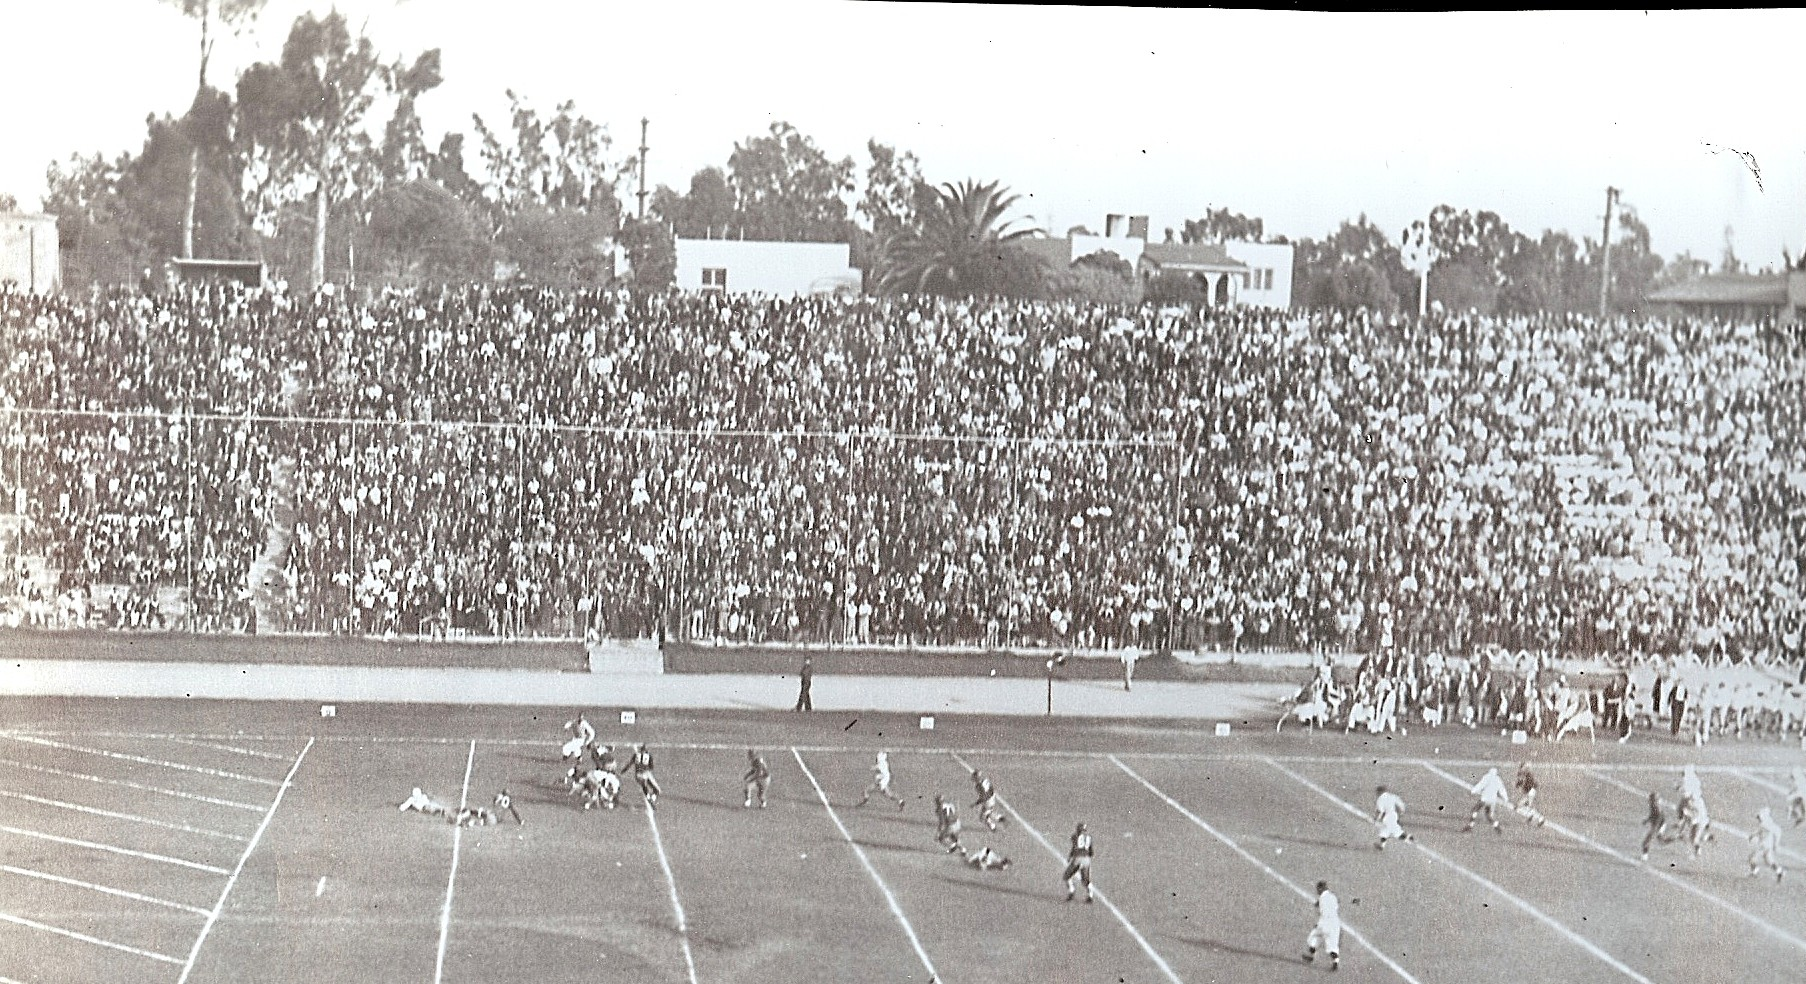 Usual big crowd was at Balboa Stadium for San Diego-Hoover game.